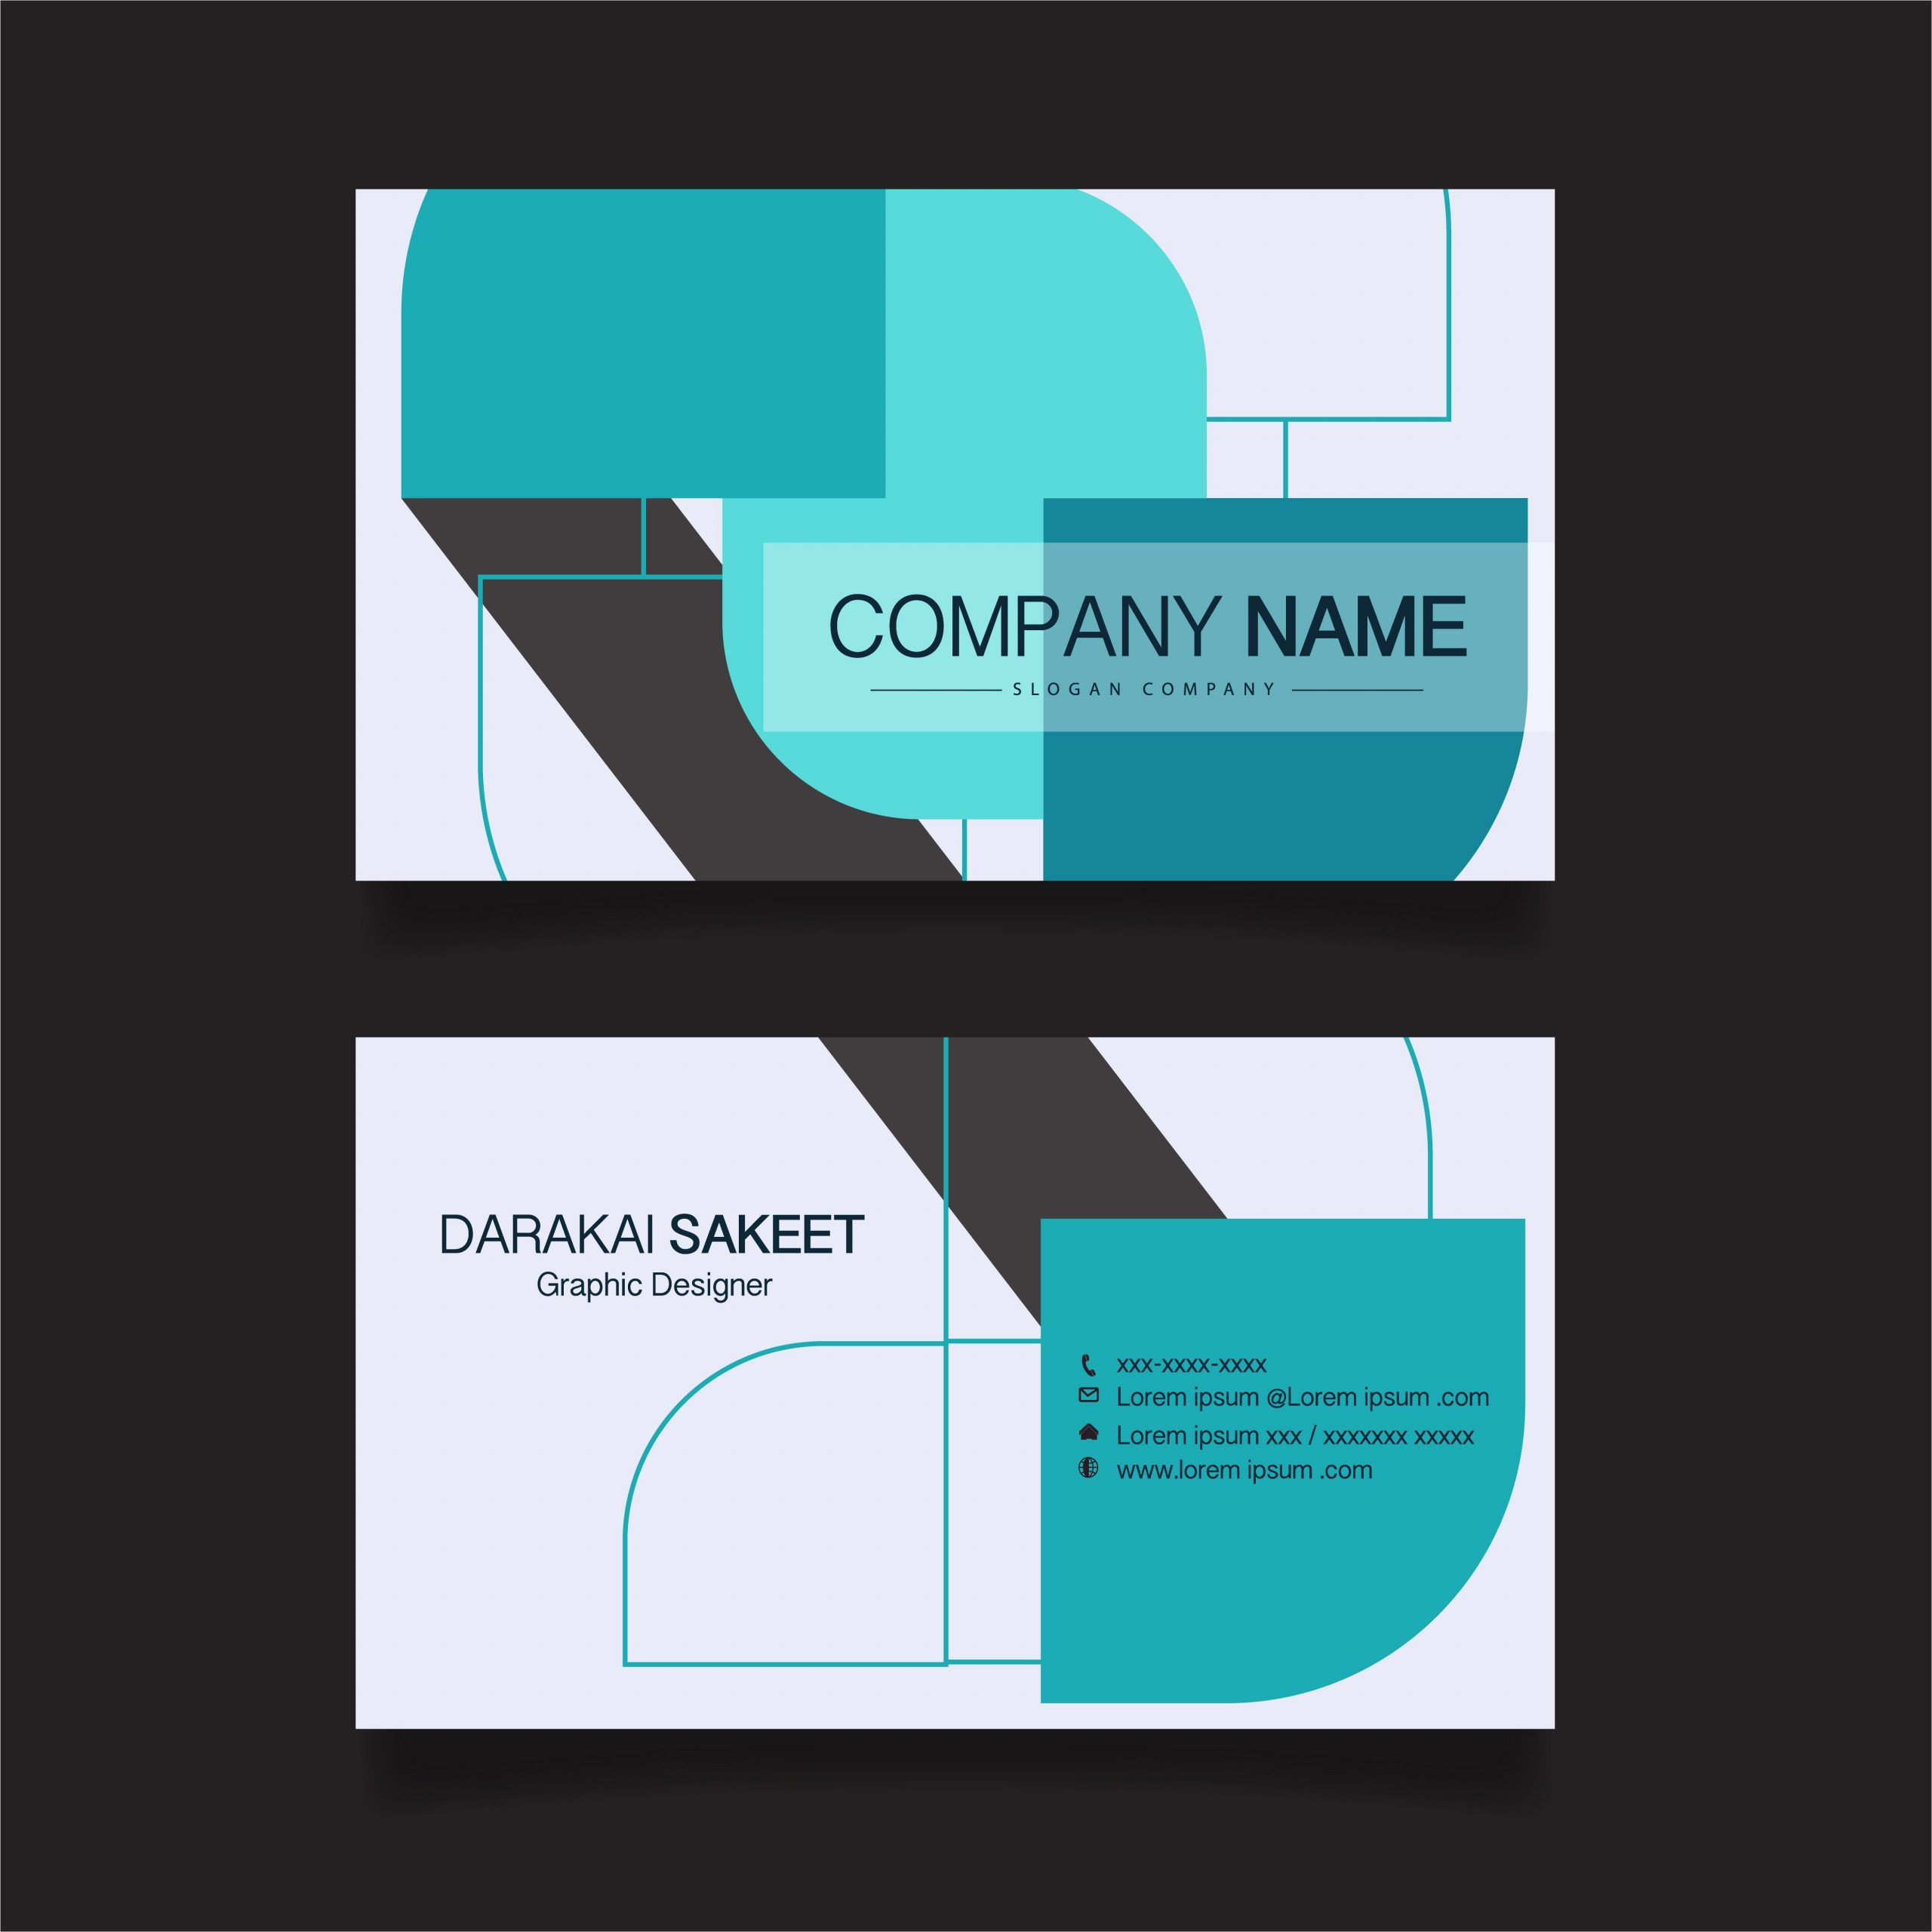 name card modern simple business card template vector illustration